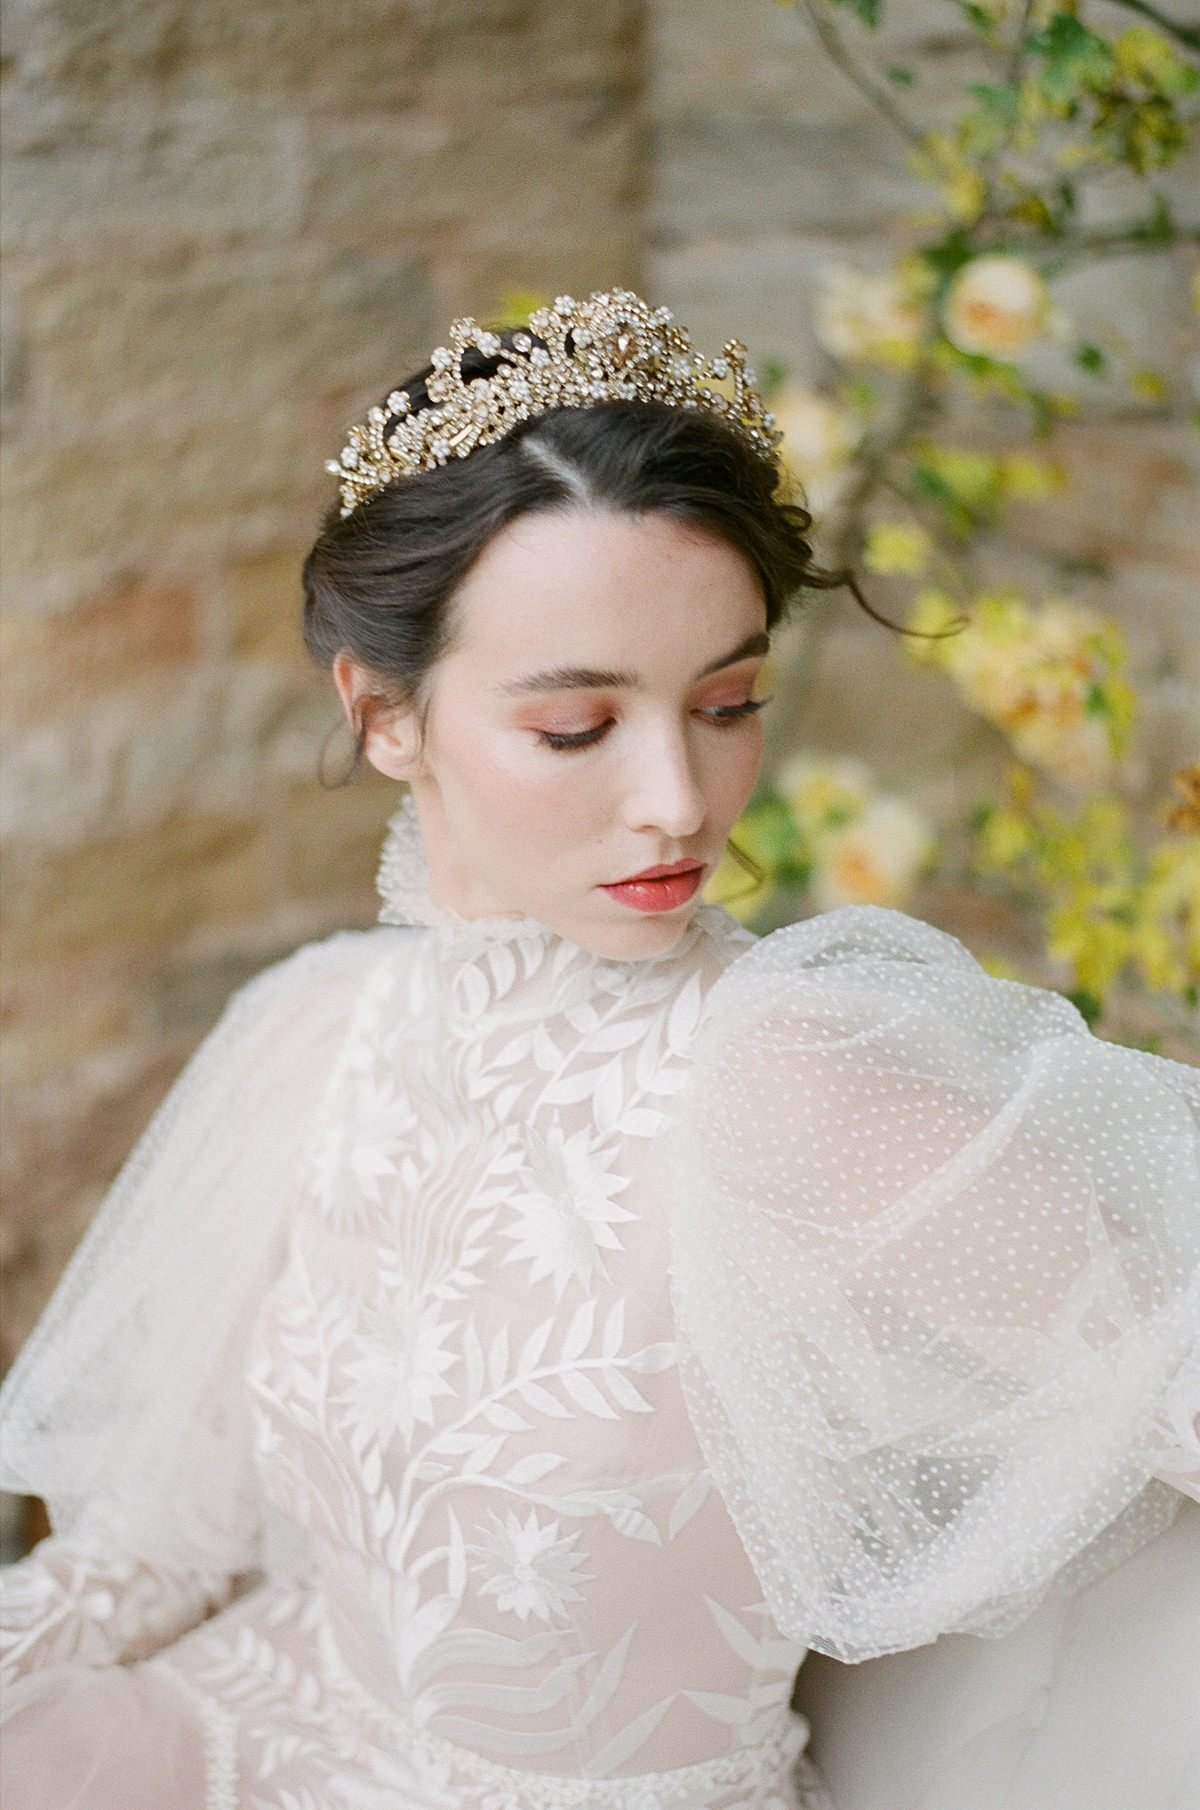 Helianthus-high-neck-puff-sleeve-wedding-dress-JoanneFlemingDesign-CelineChhuonPhoto (32)_WEB